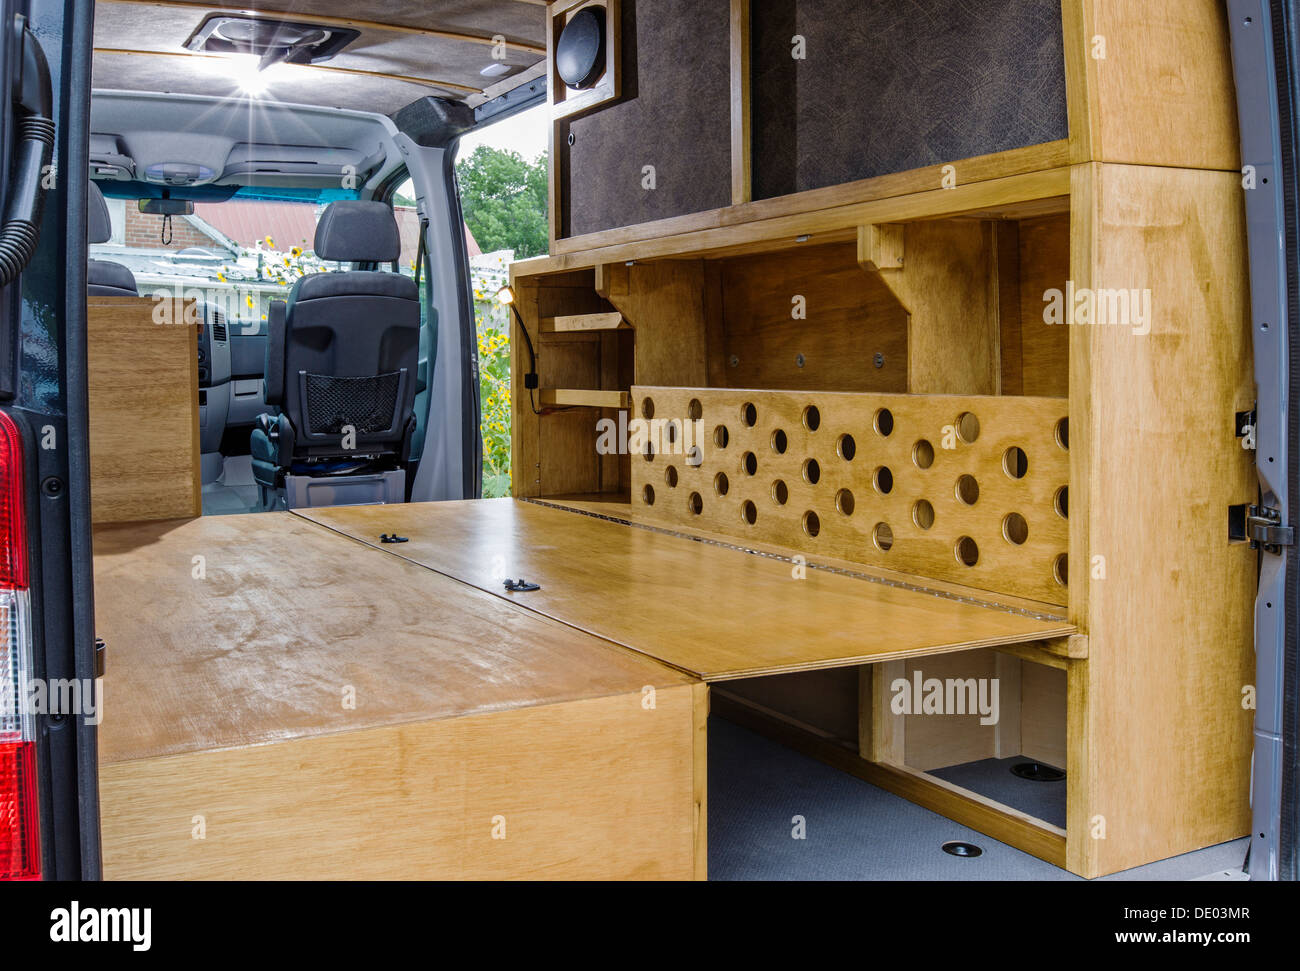 Mercedes Sprinter Customized >> Interior view of Mercedes-Benz Sprinter Cargo Van 2500, being Stock Photo, Royalty Free Image ...